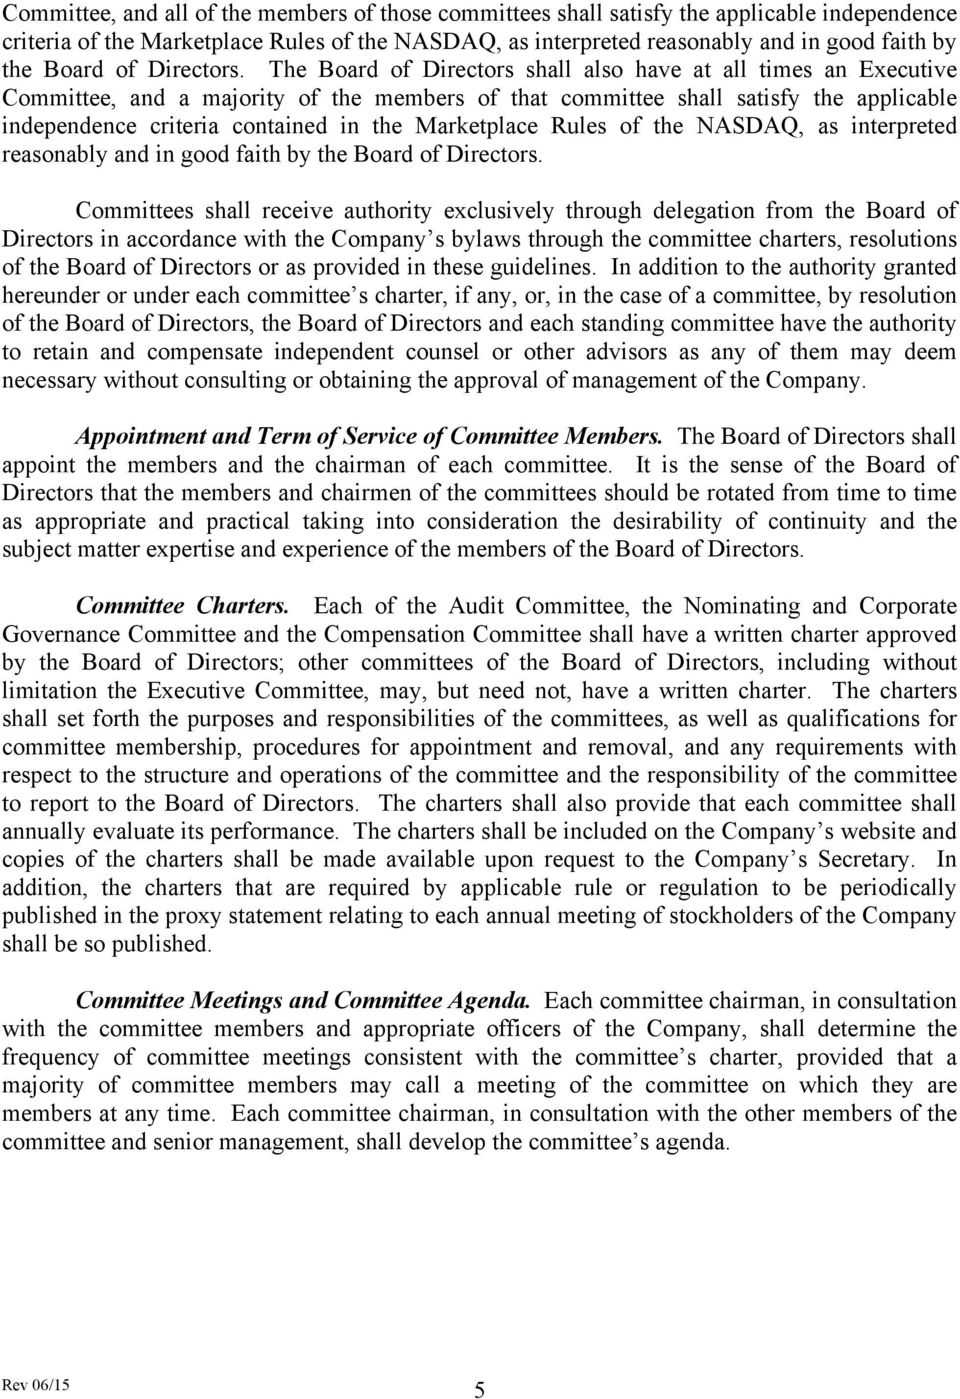 The Board of Directors shall also have at all times an Executive Committee, and a majority of the members of that committee shall satisfy the applicable independence criteria contained in the